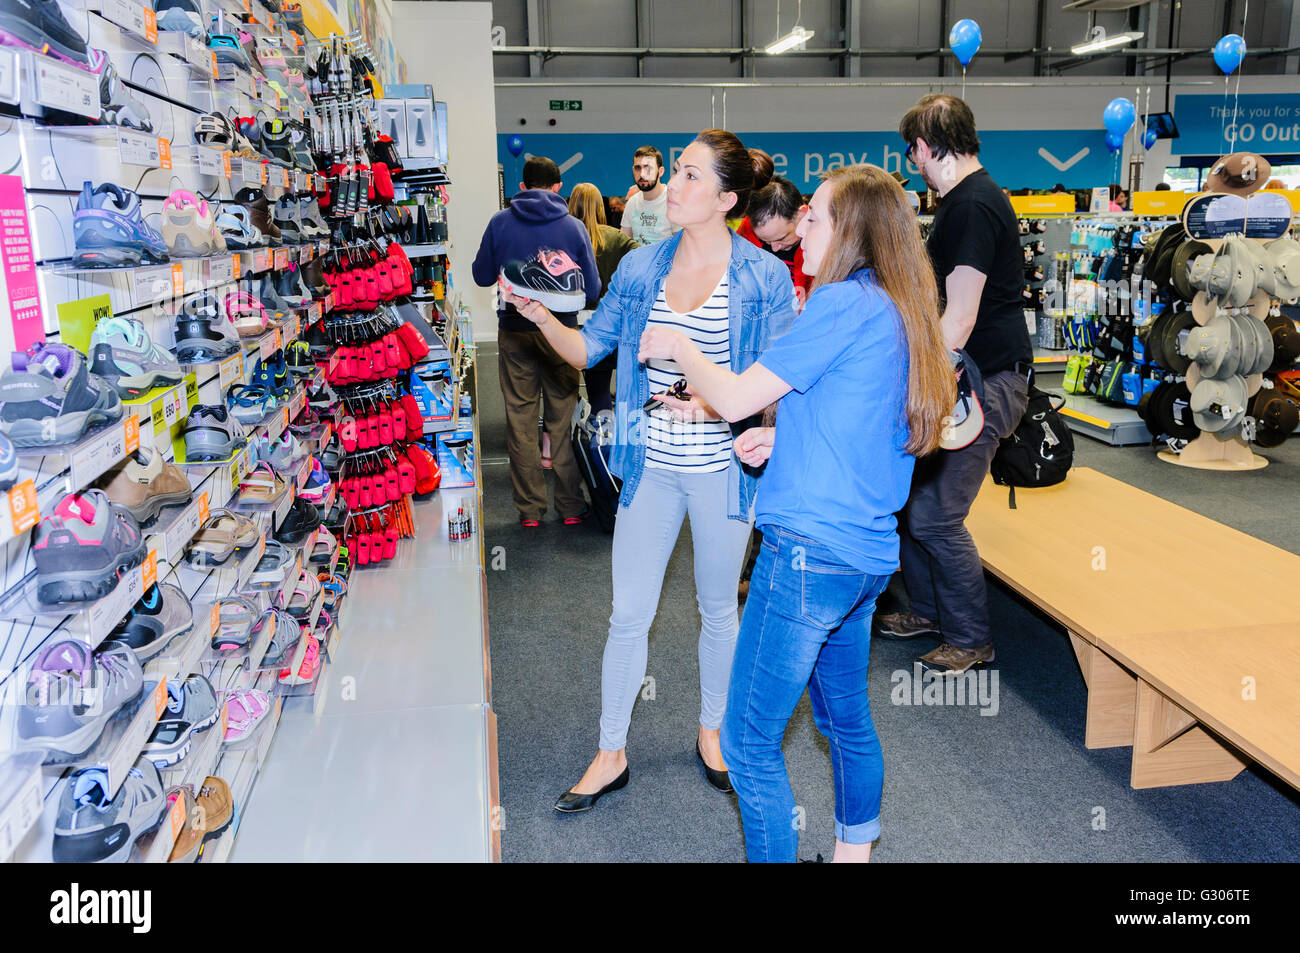 Customers look at ladies' running shoes